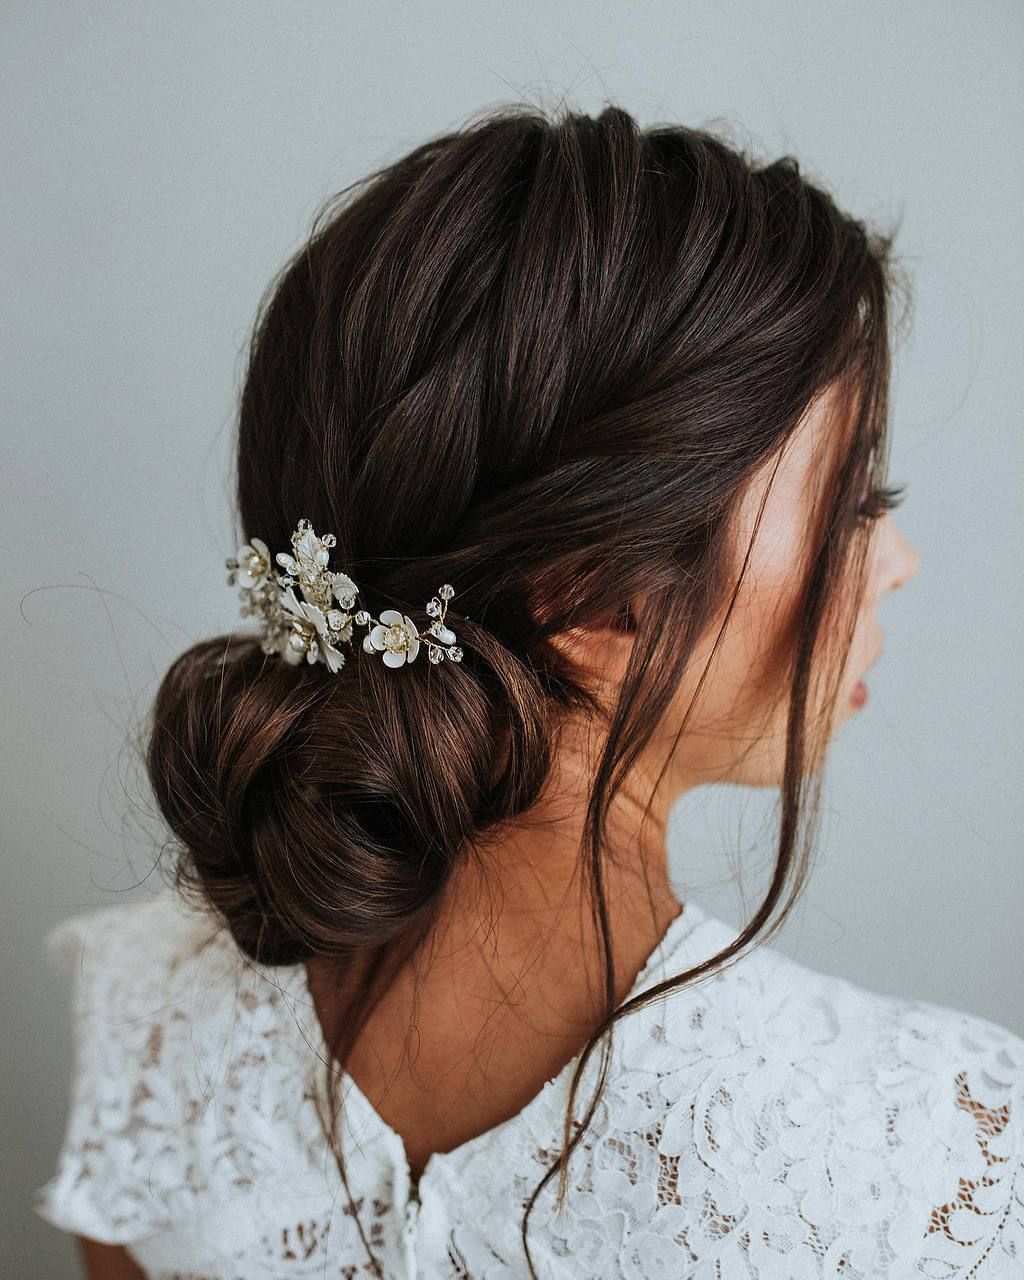 28 Half Up Half Down Wedding Hairstyles We Love: 100 Gorgeous Wedding Hair From Ceremony To Reception